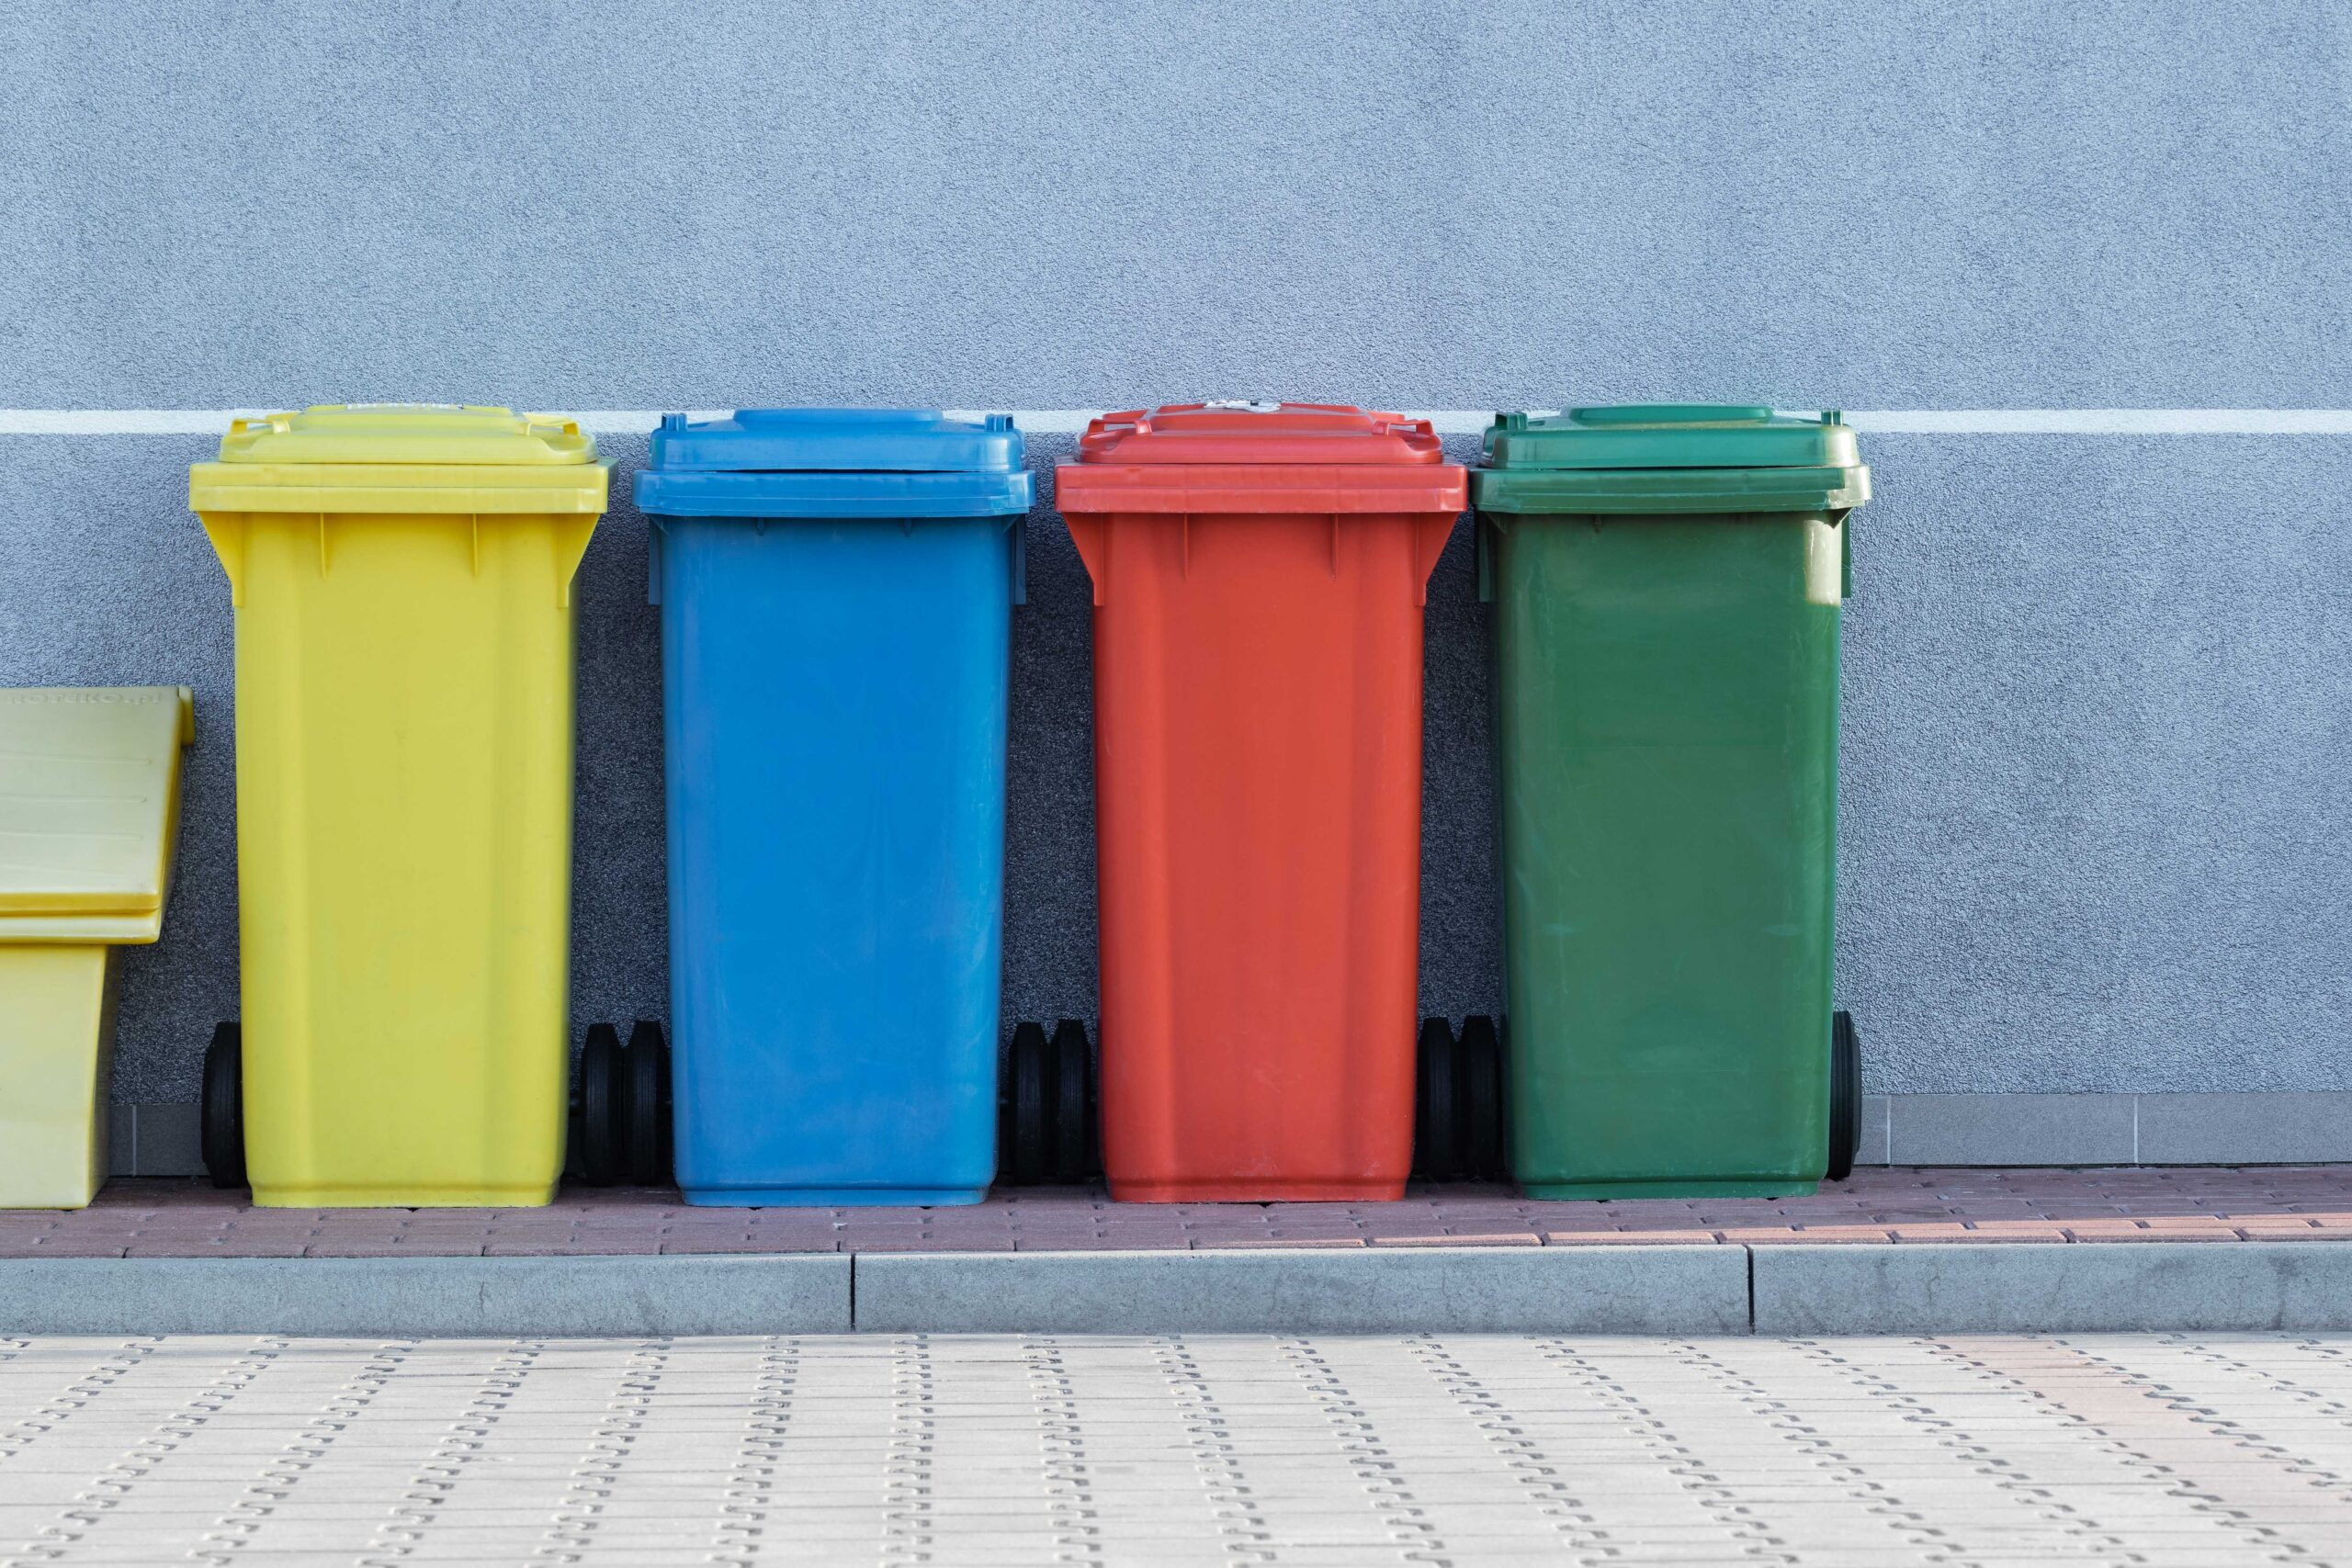 Leave The Rubbish Removal To The Experts